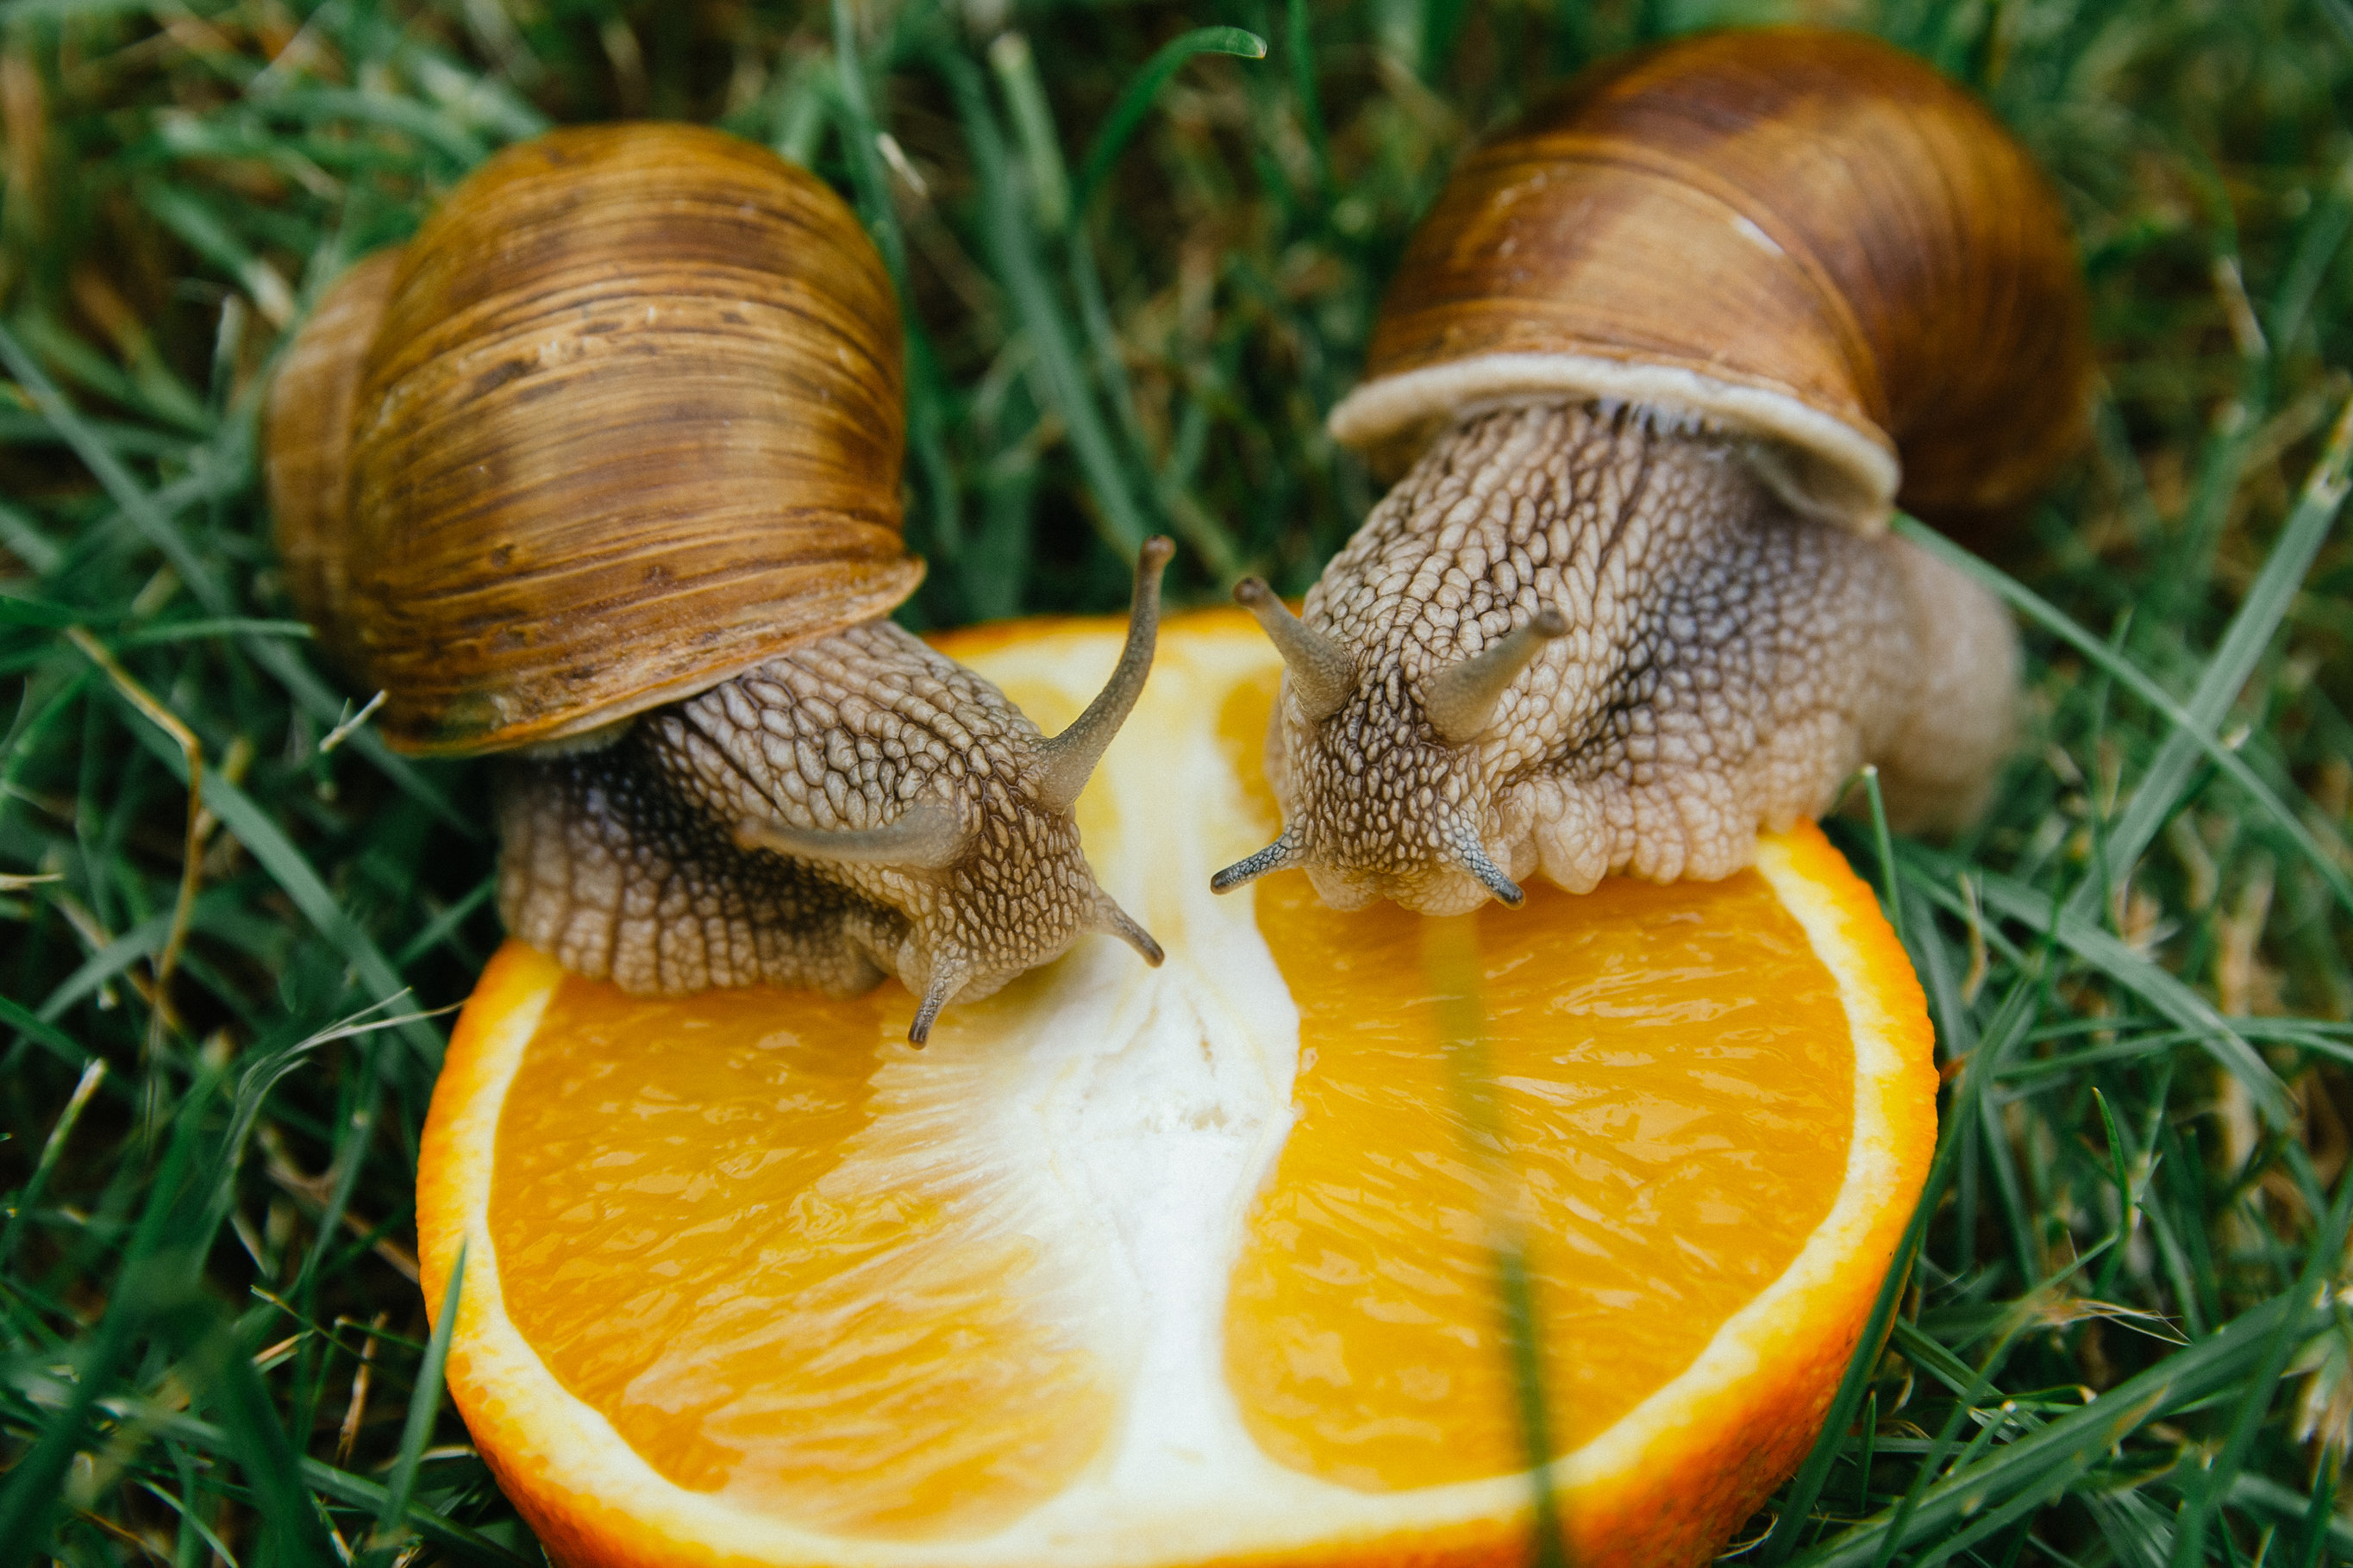 pet snails for sale for only 4 95 giant garden snails helix